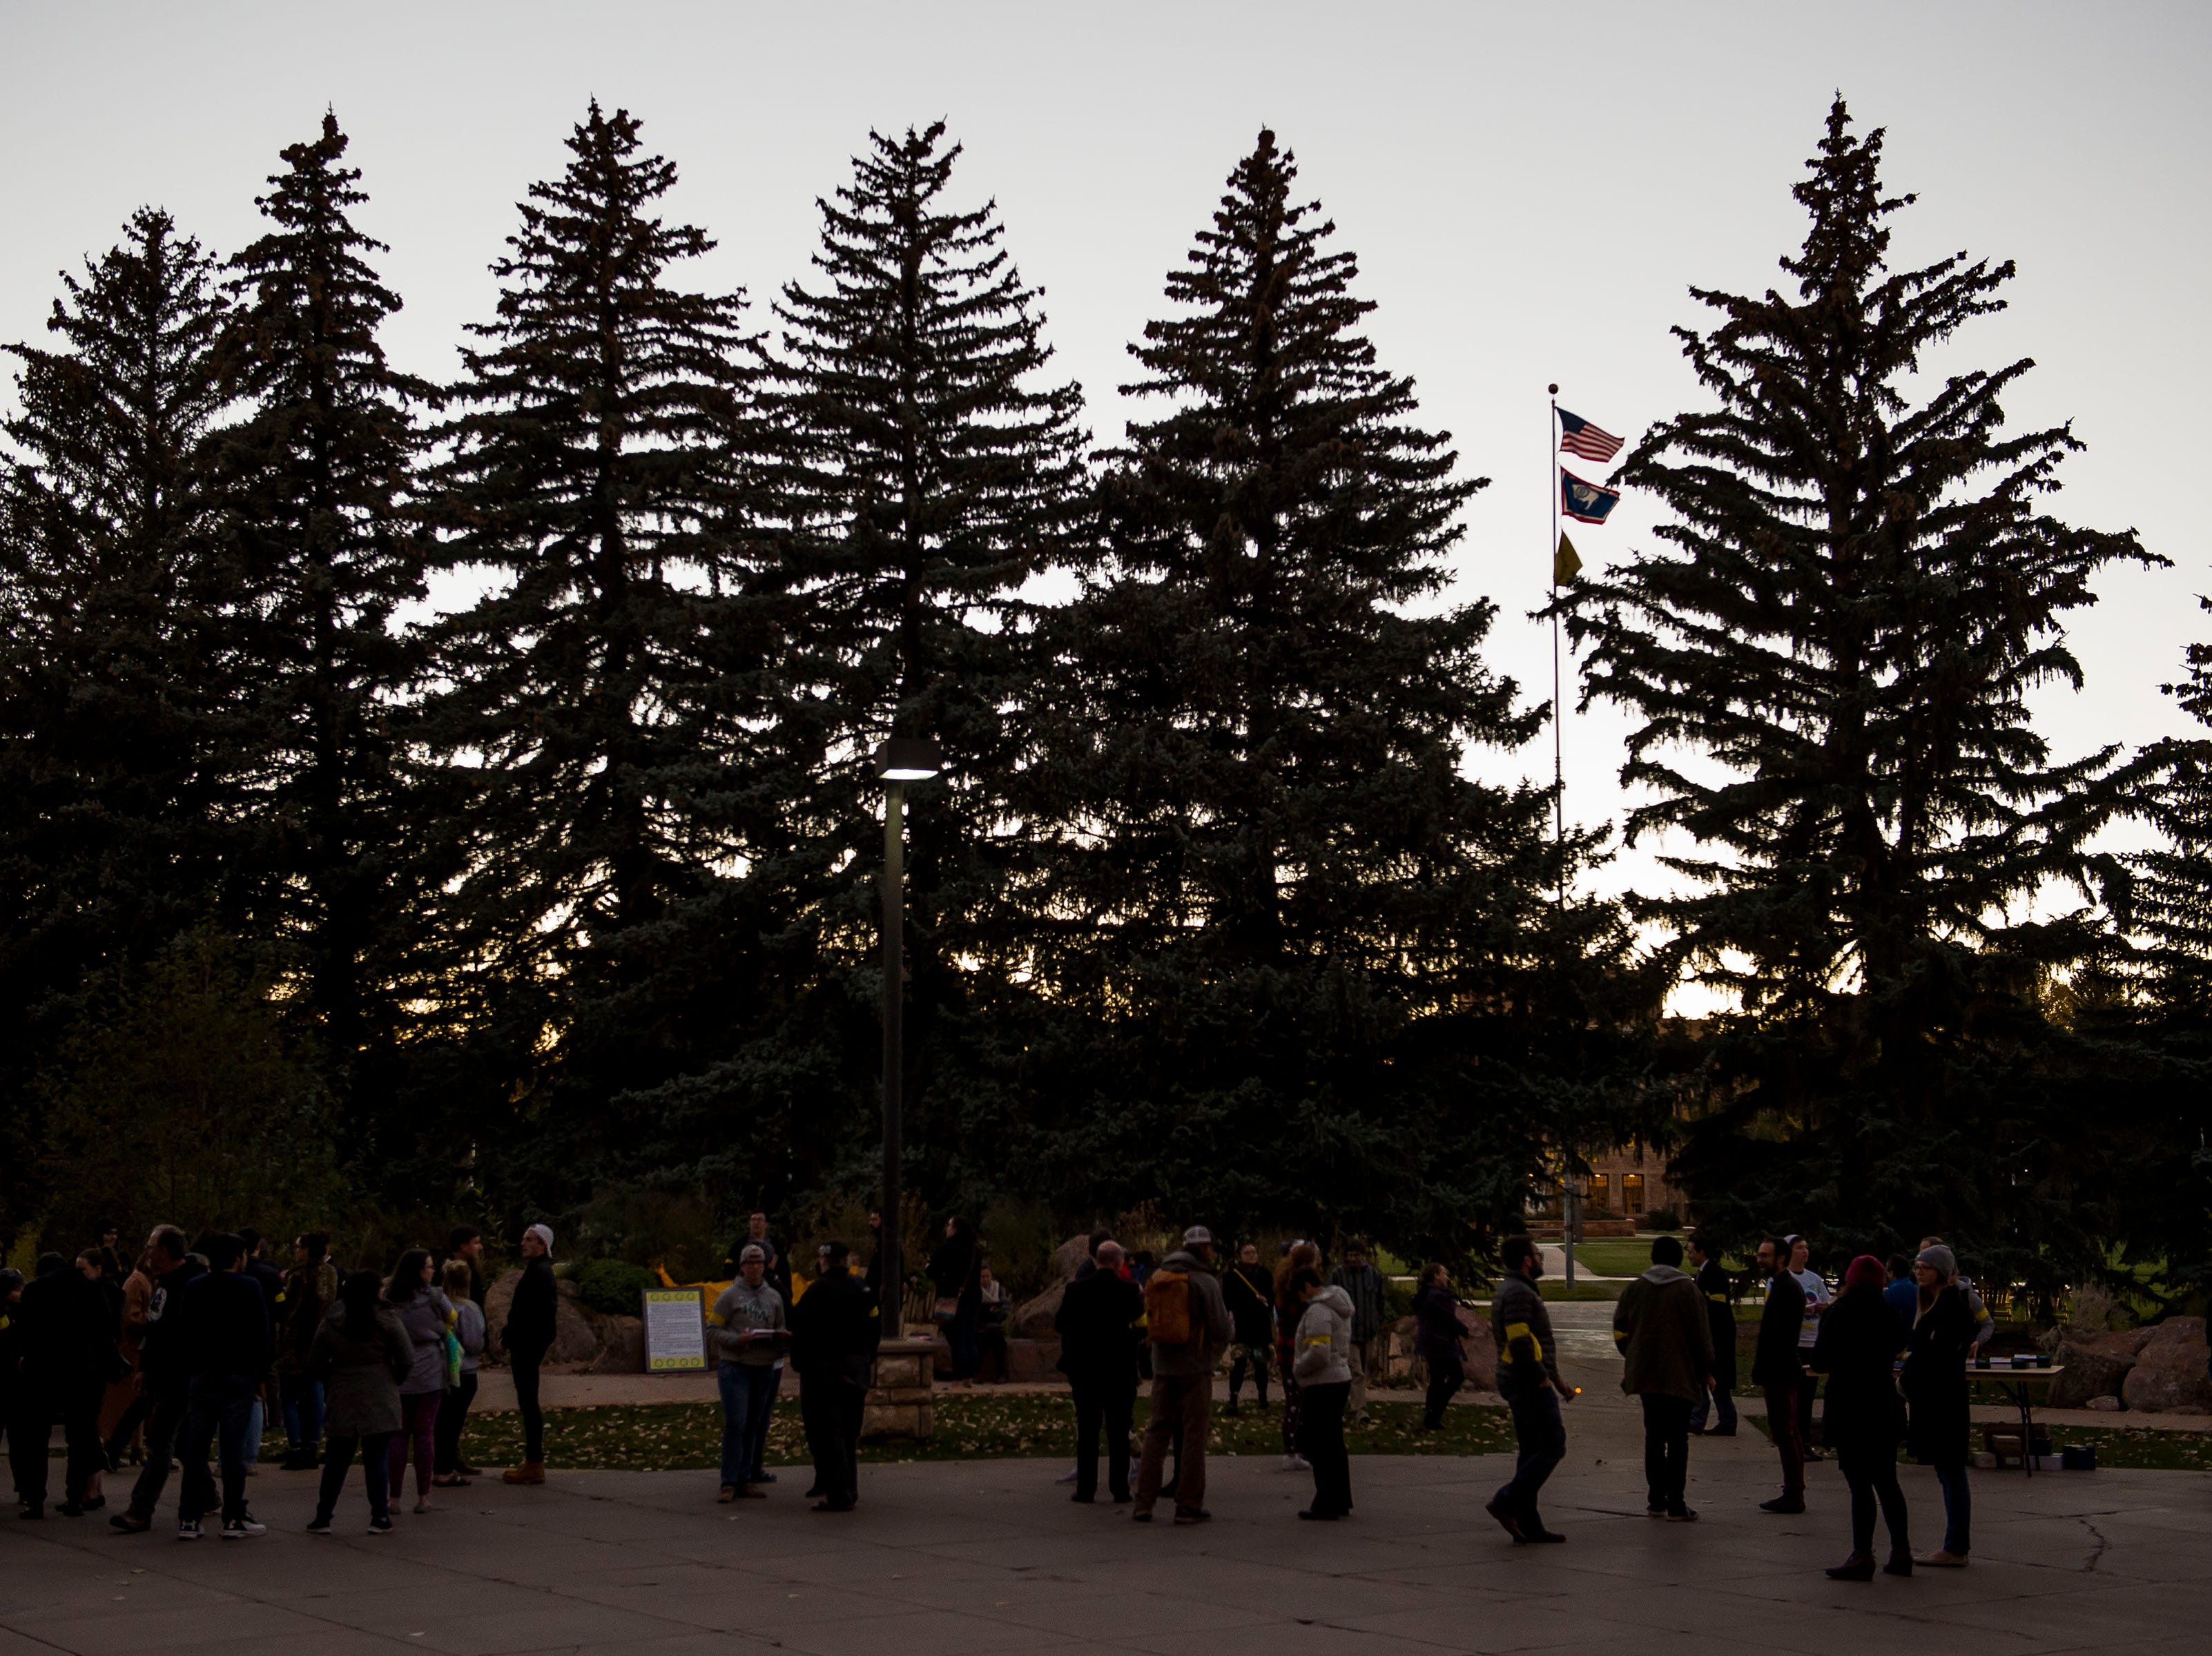 Vigil participants begin to gather before a candlelight vigil on the 20th anniversary of Matthew Shepard's death on Friday, Oct. 12, 2018, at Prexy's Pasture on the University of Wyoming campus in Laramie, Wyo.